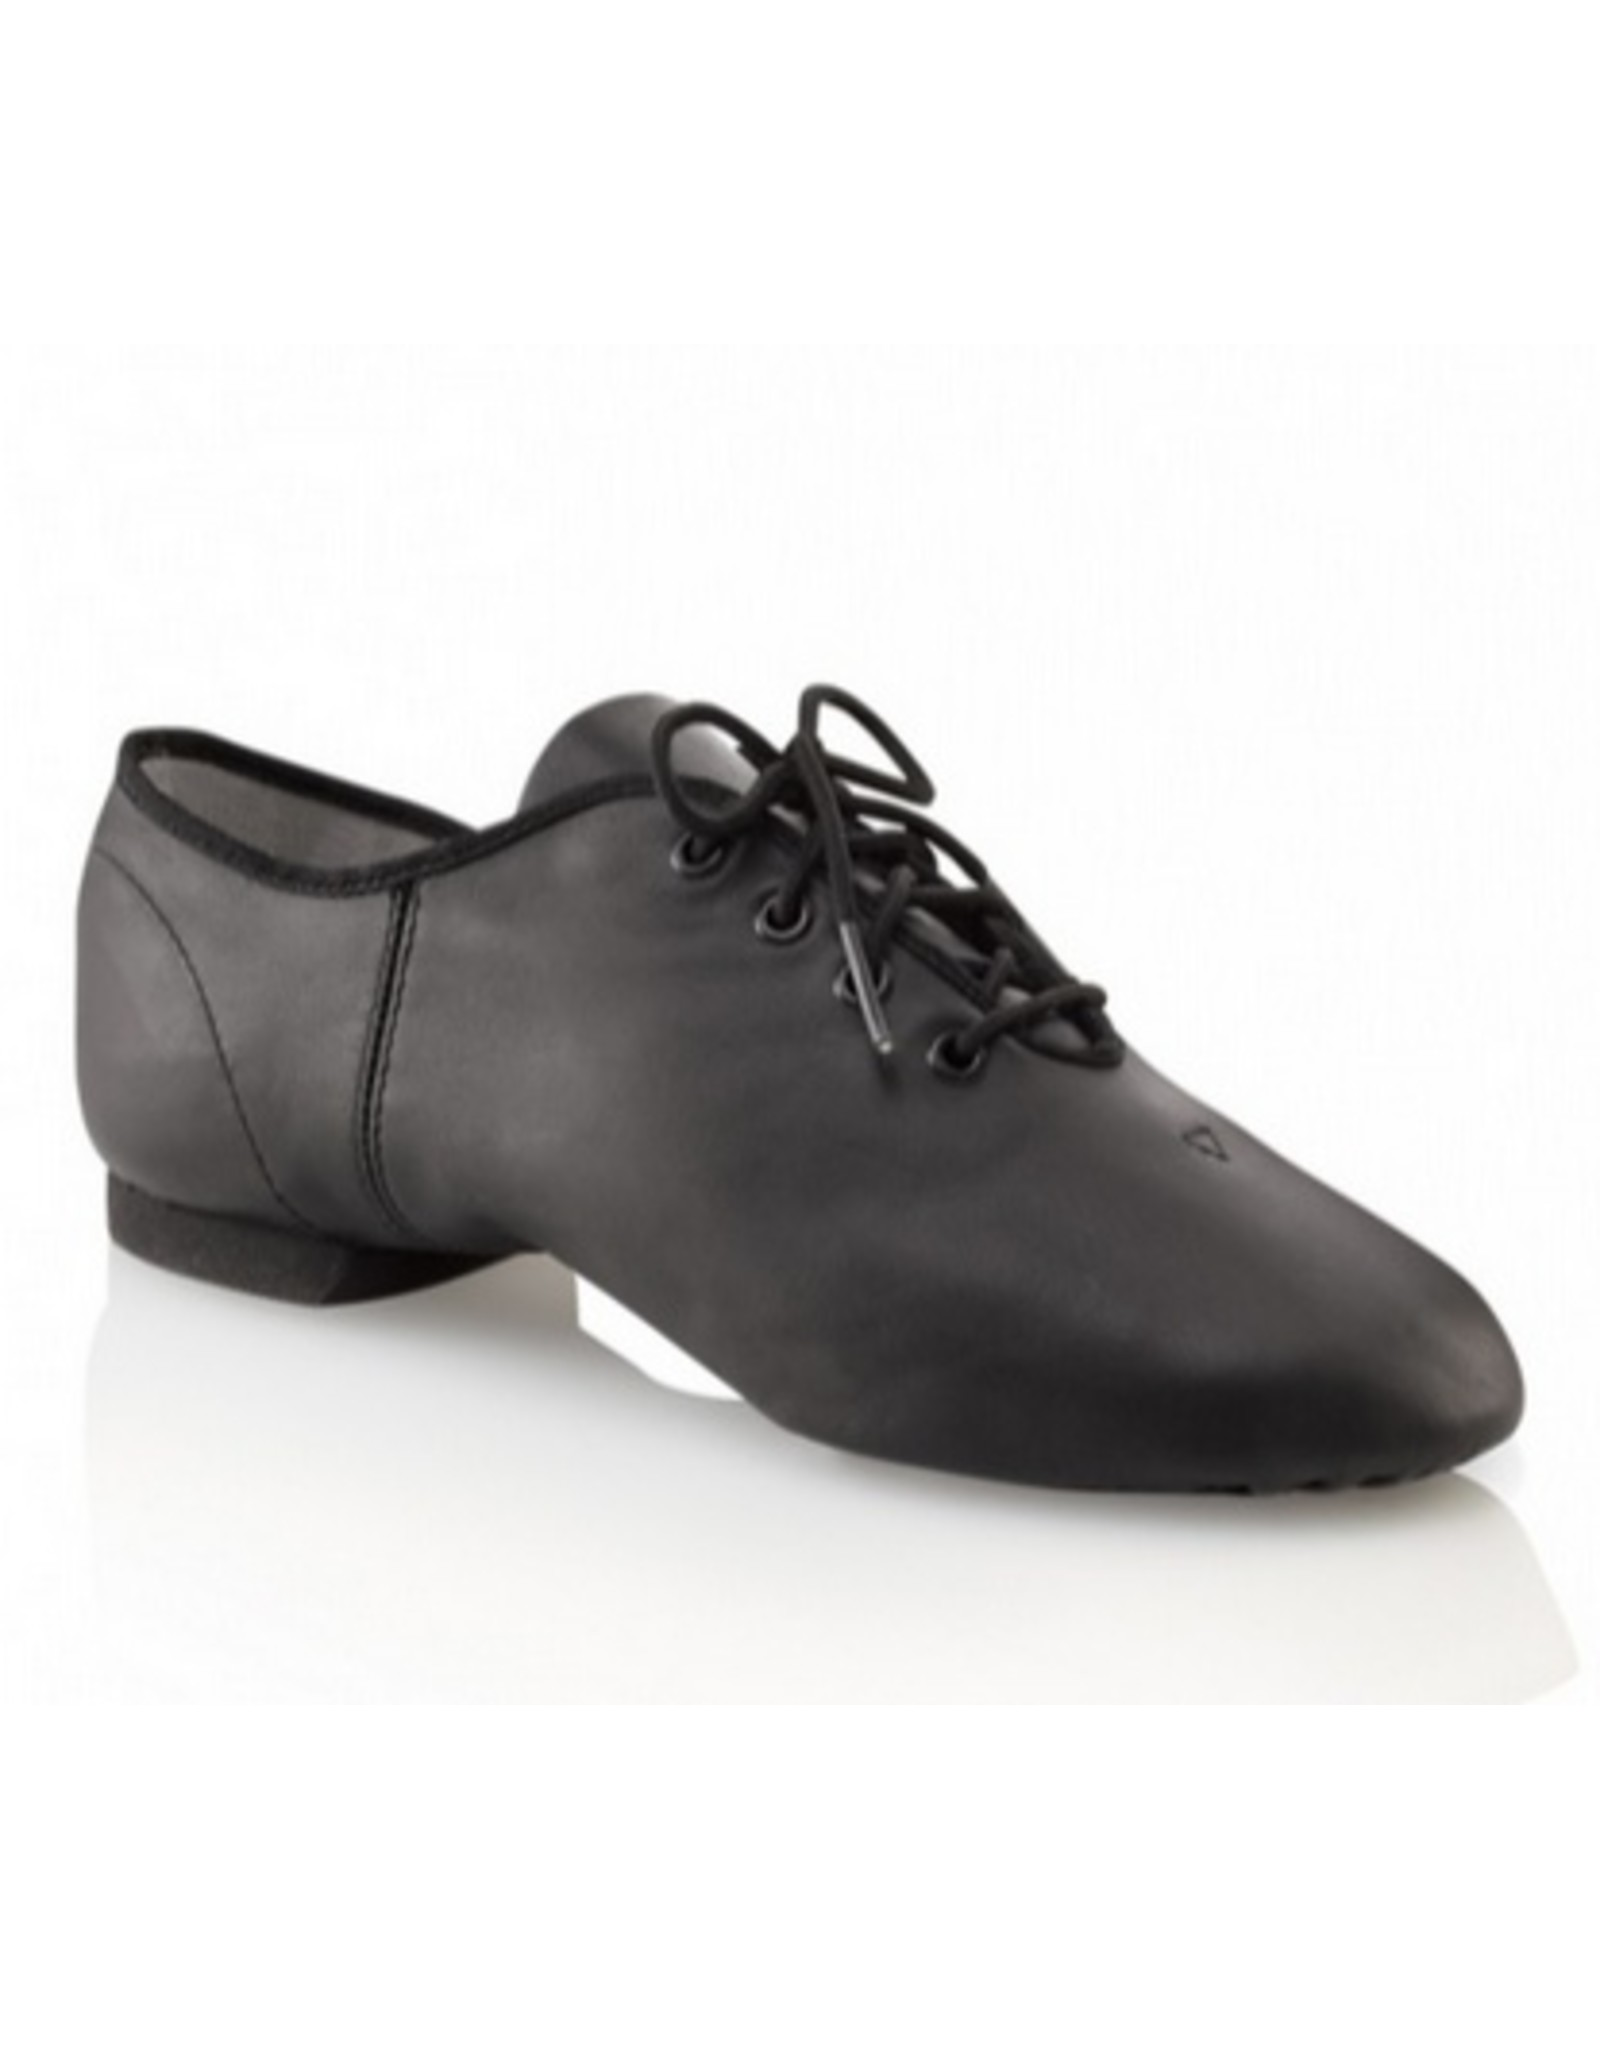 Capezio Economy Jazz Oxford Child